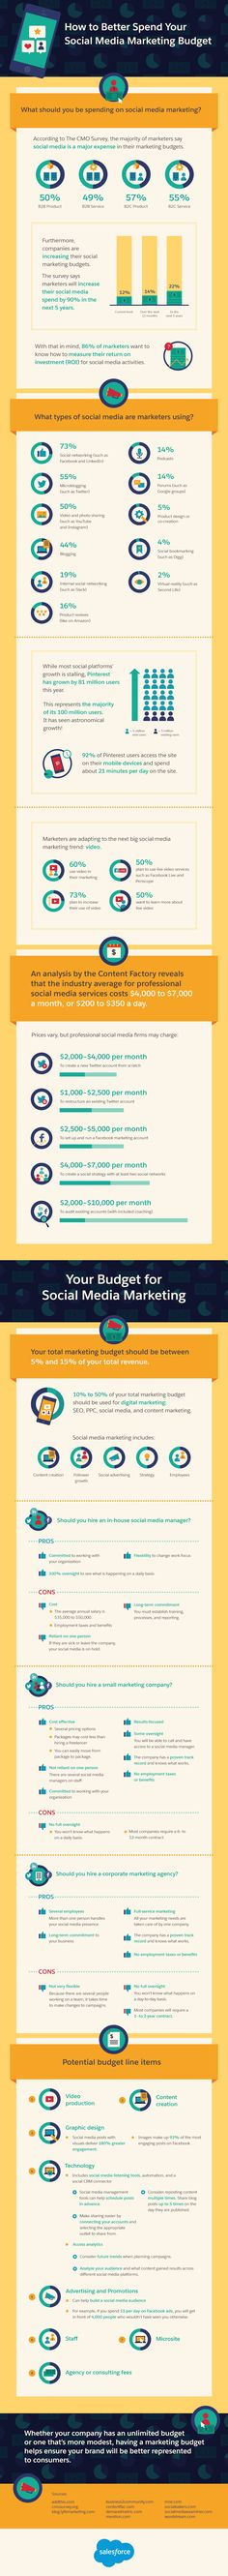 How to Better Spend Your Social Media Marketing Budget [Infographic]